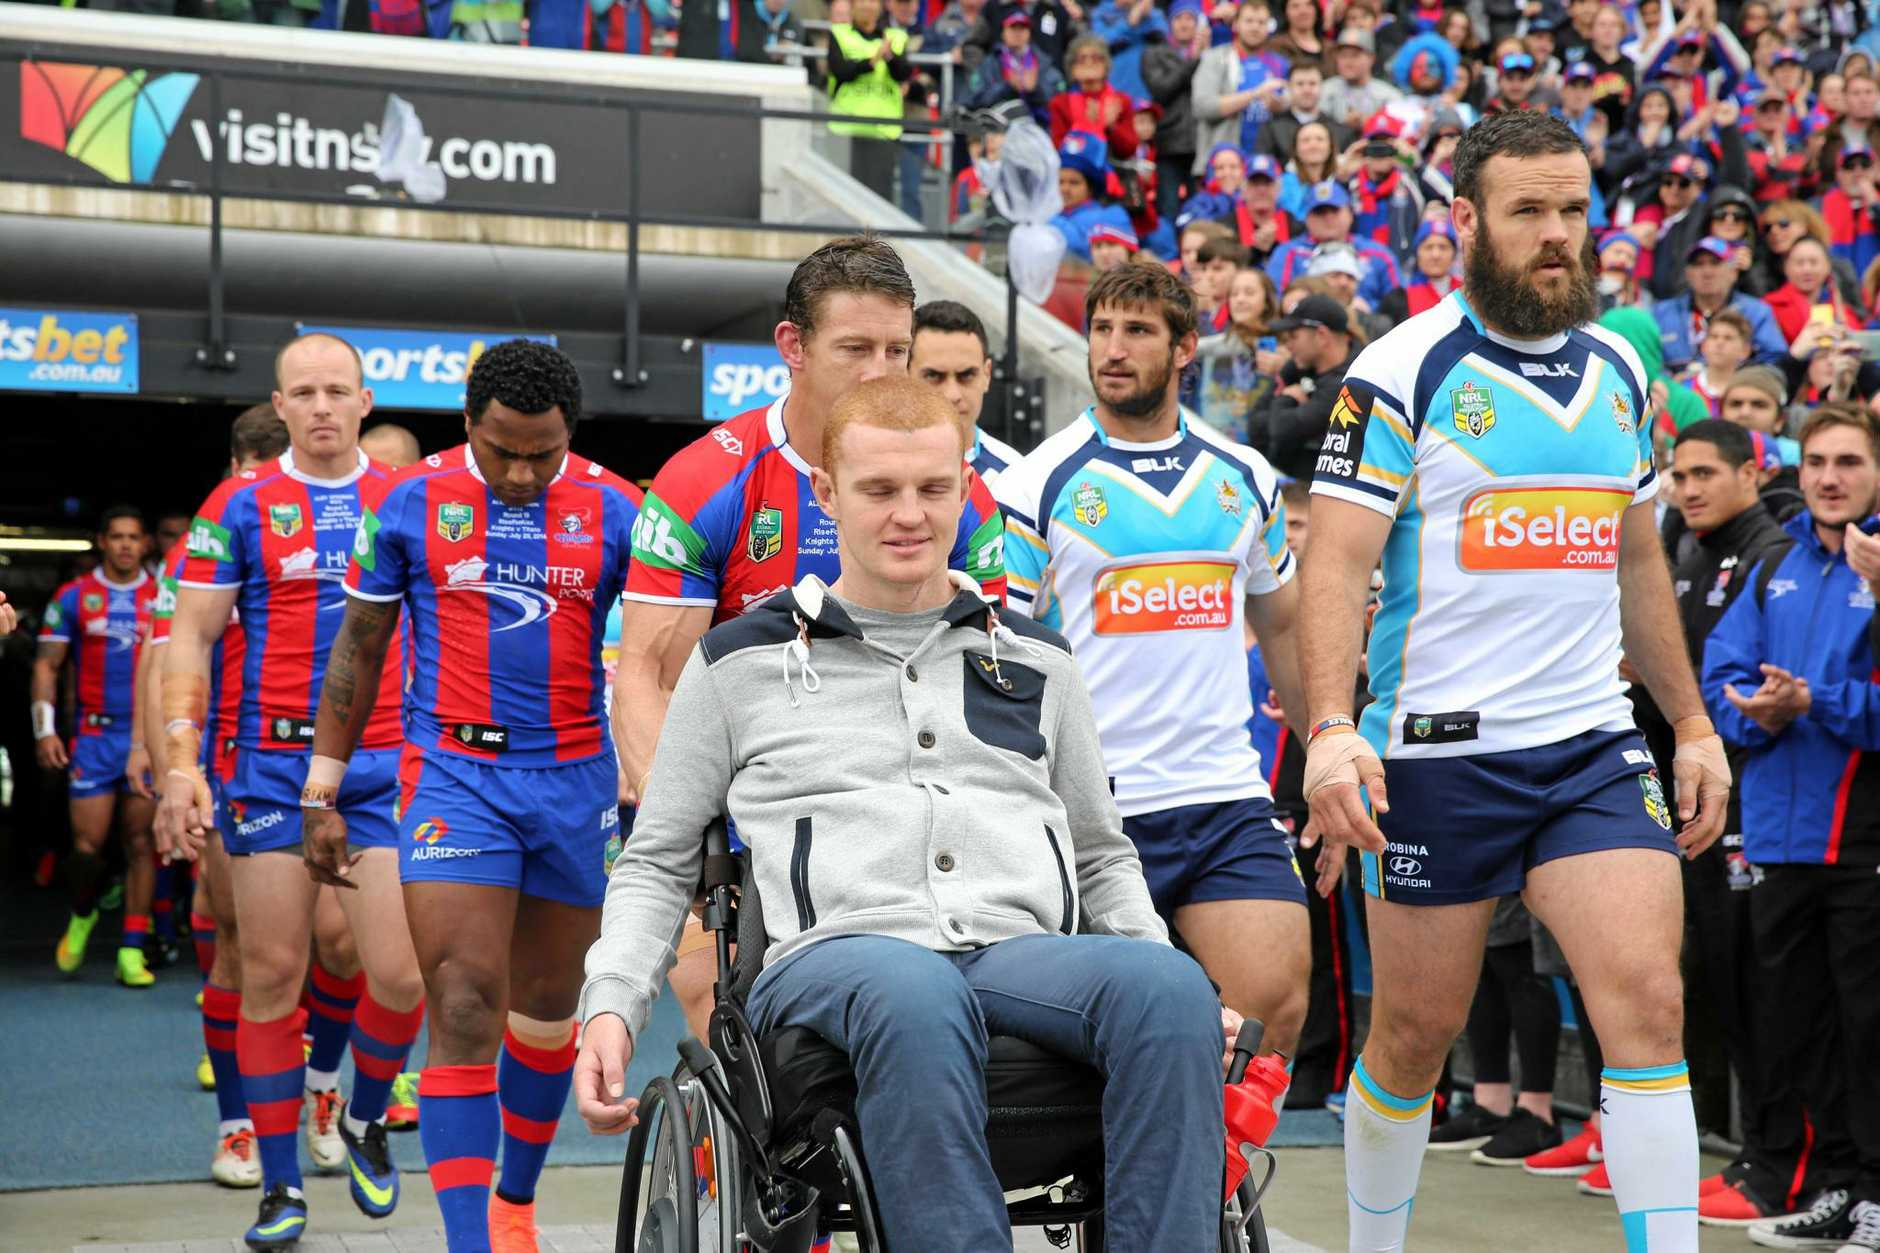 LEGAL BATTLE: Former Newcastle Knights player Alex McKinnon is suing the NRL after a tackle left him paralysed in 2014.